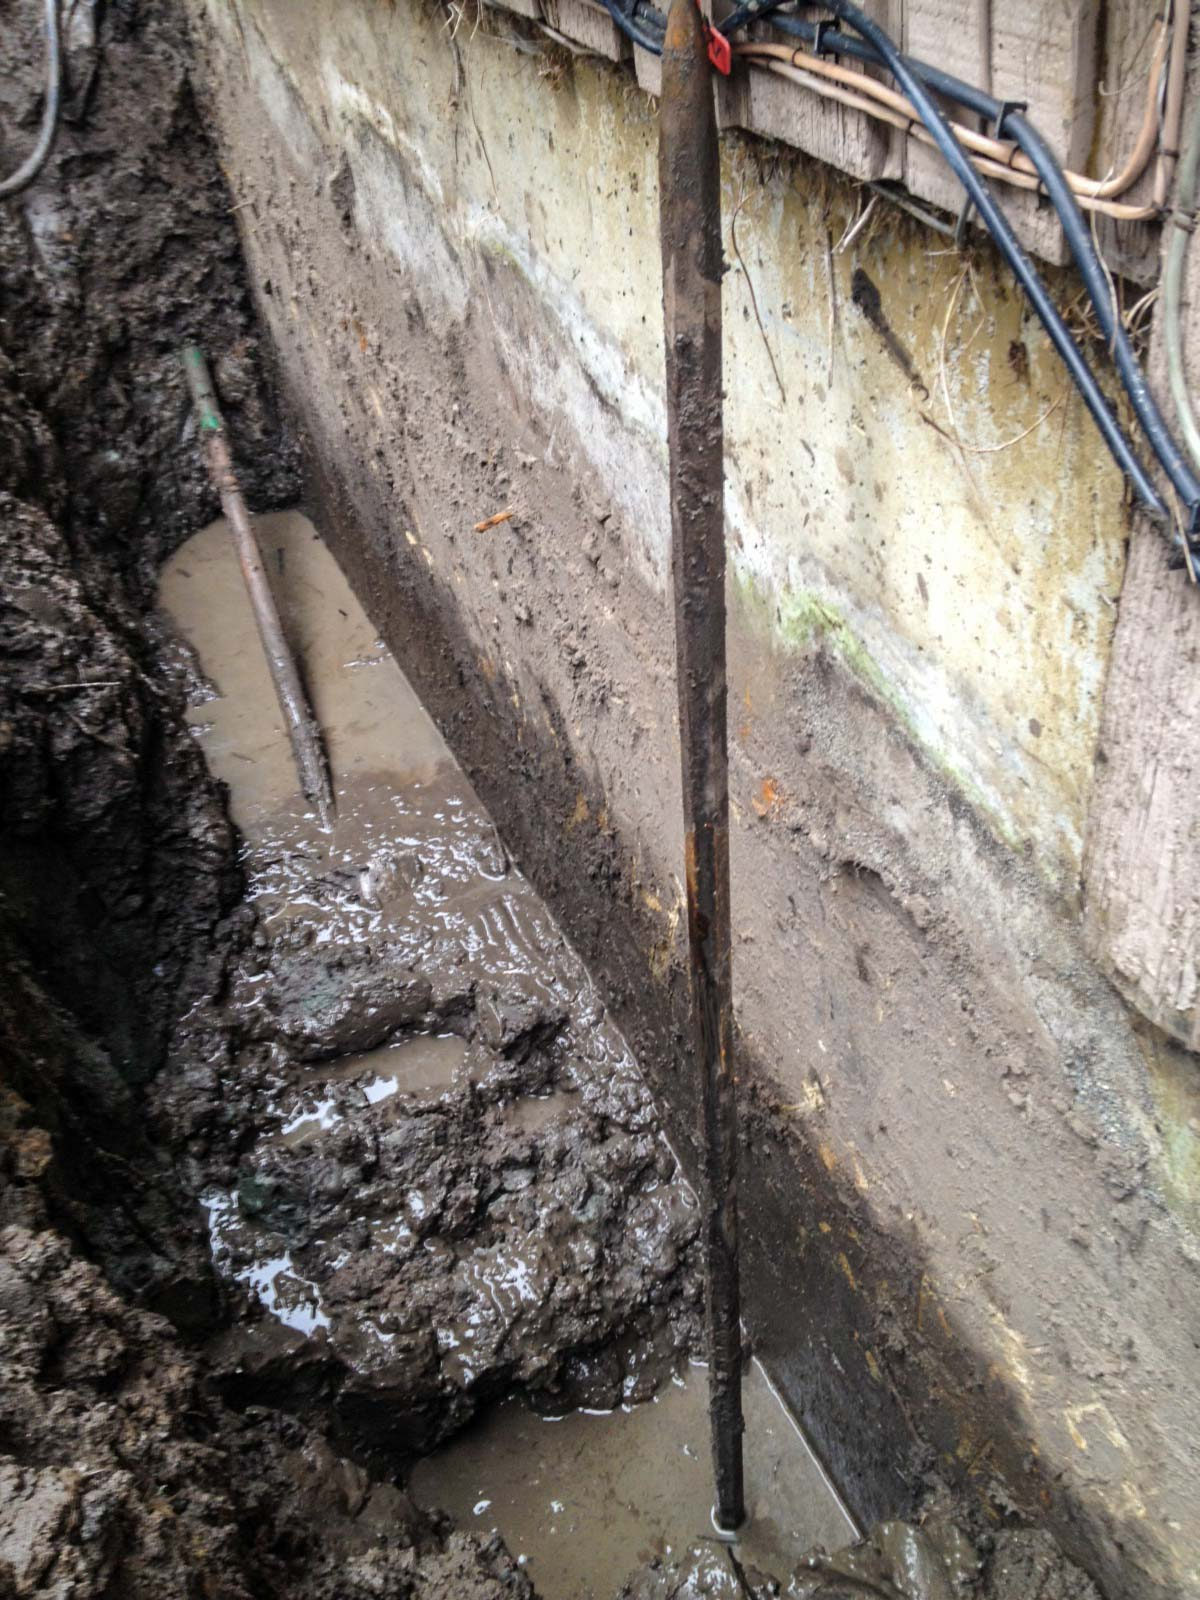 Drainage Pipe Broken For Exterior Waterproofing